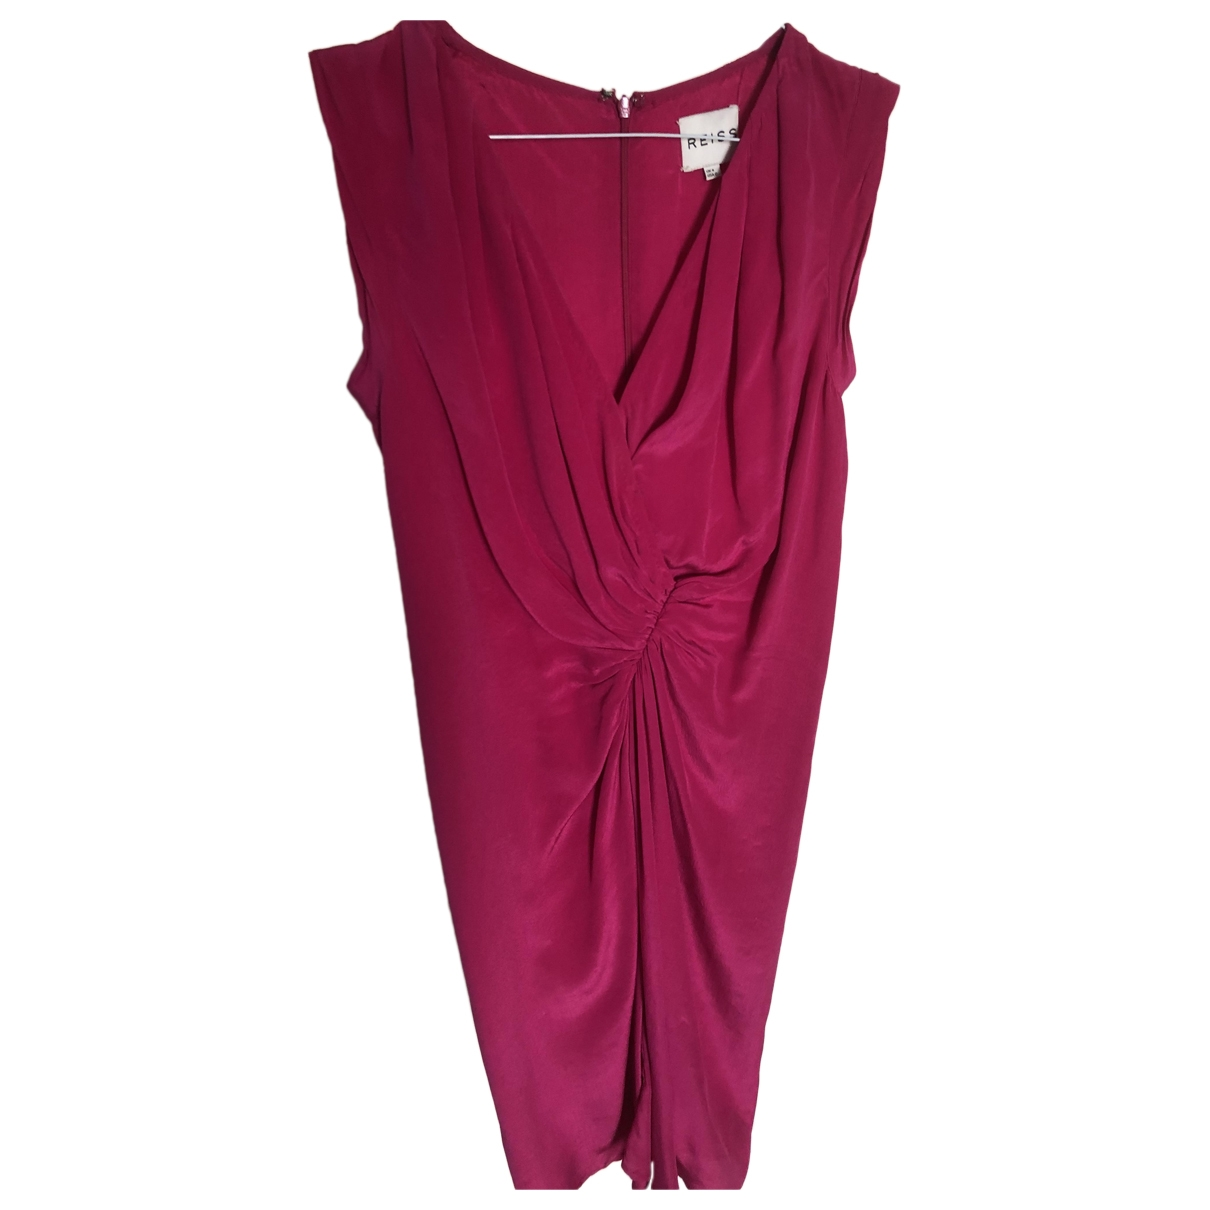 Reiss \N Kleid in  Rosa Seide